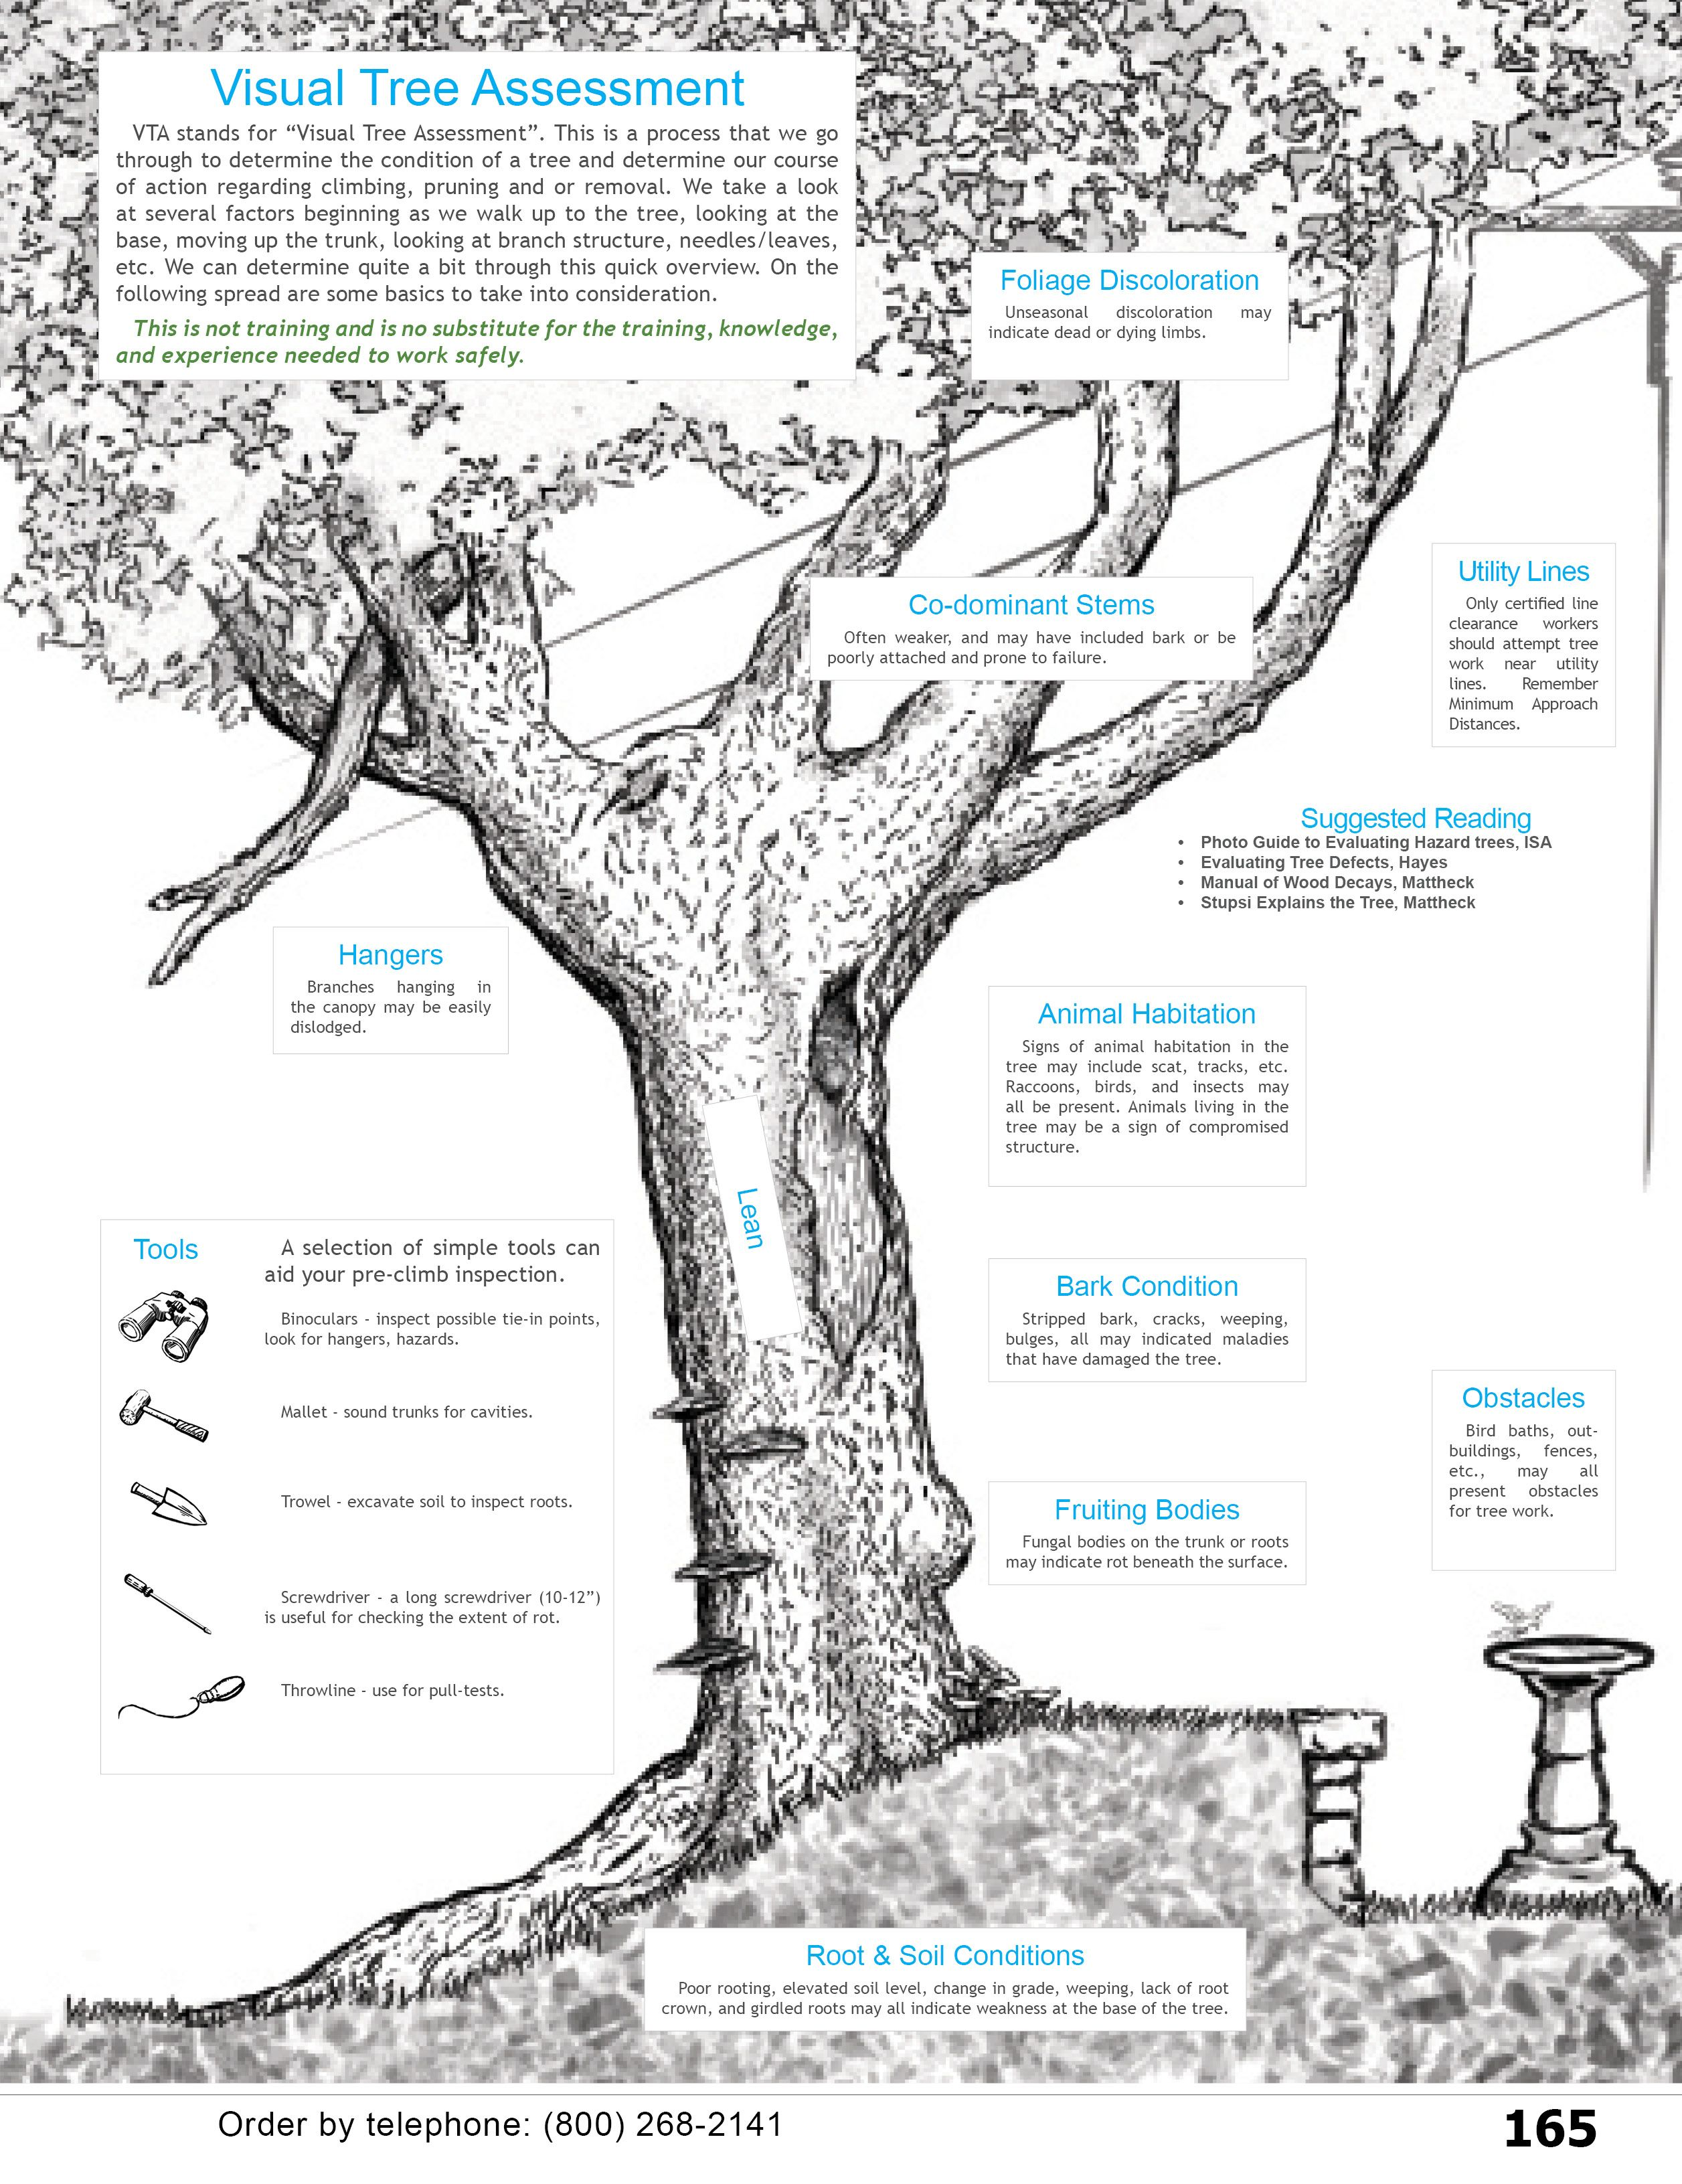 Visual Tree Assessment For Arborists Homeowners Landscapers Etc